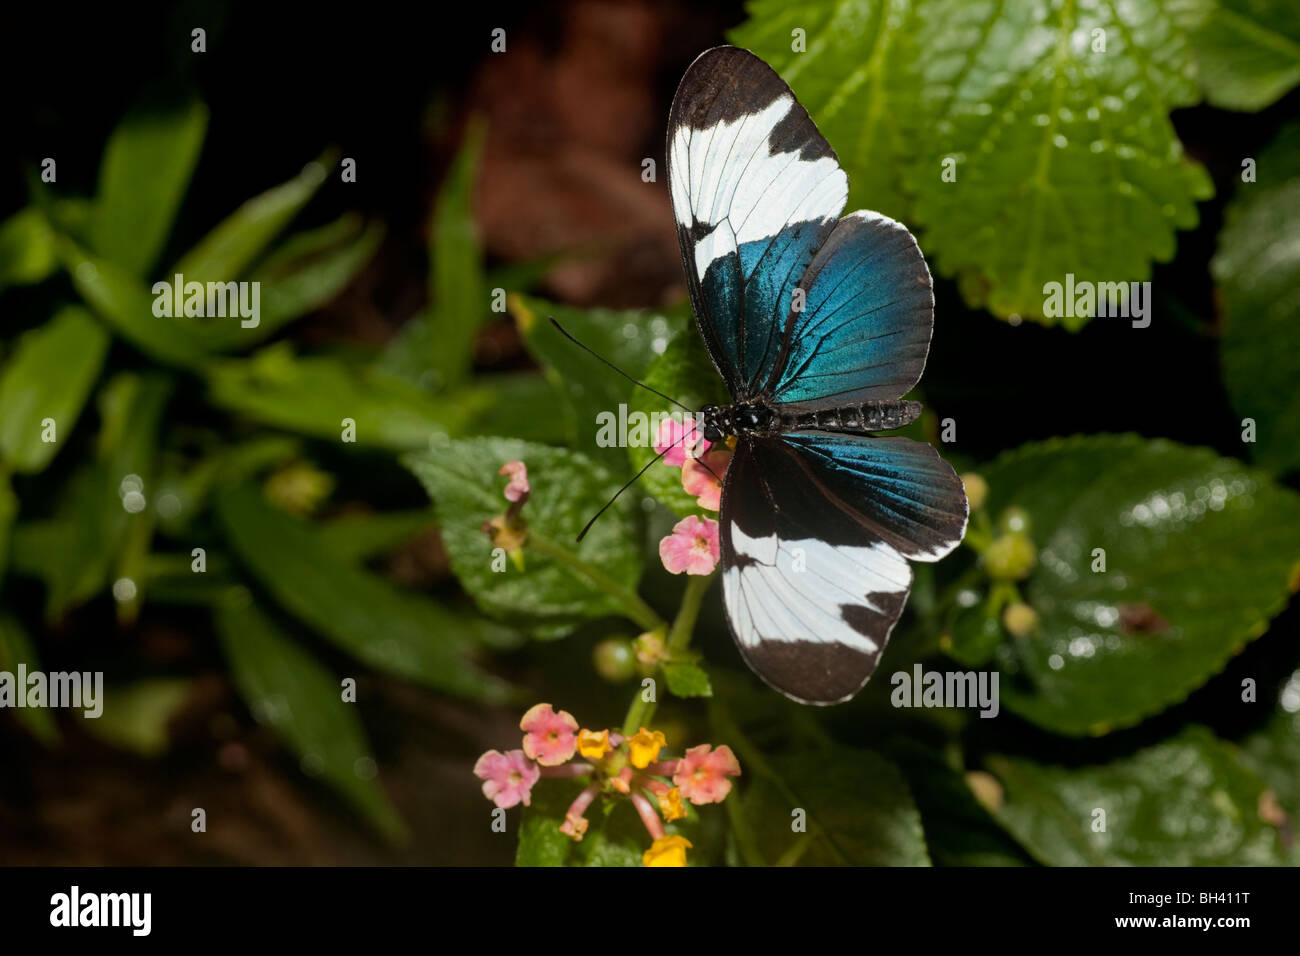 Heliconius Sapho Butterfly from Costa Rica, is black and white but has an irridescent blue metalic sheen. - Stock Image